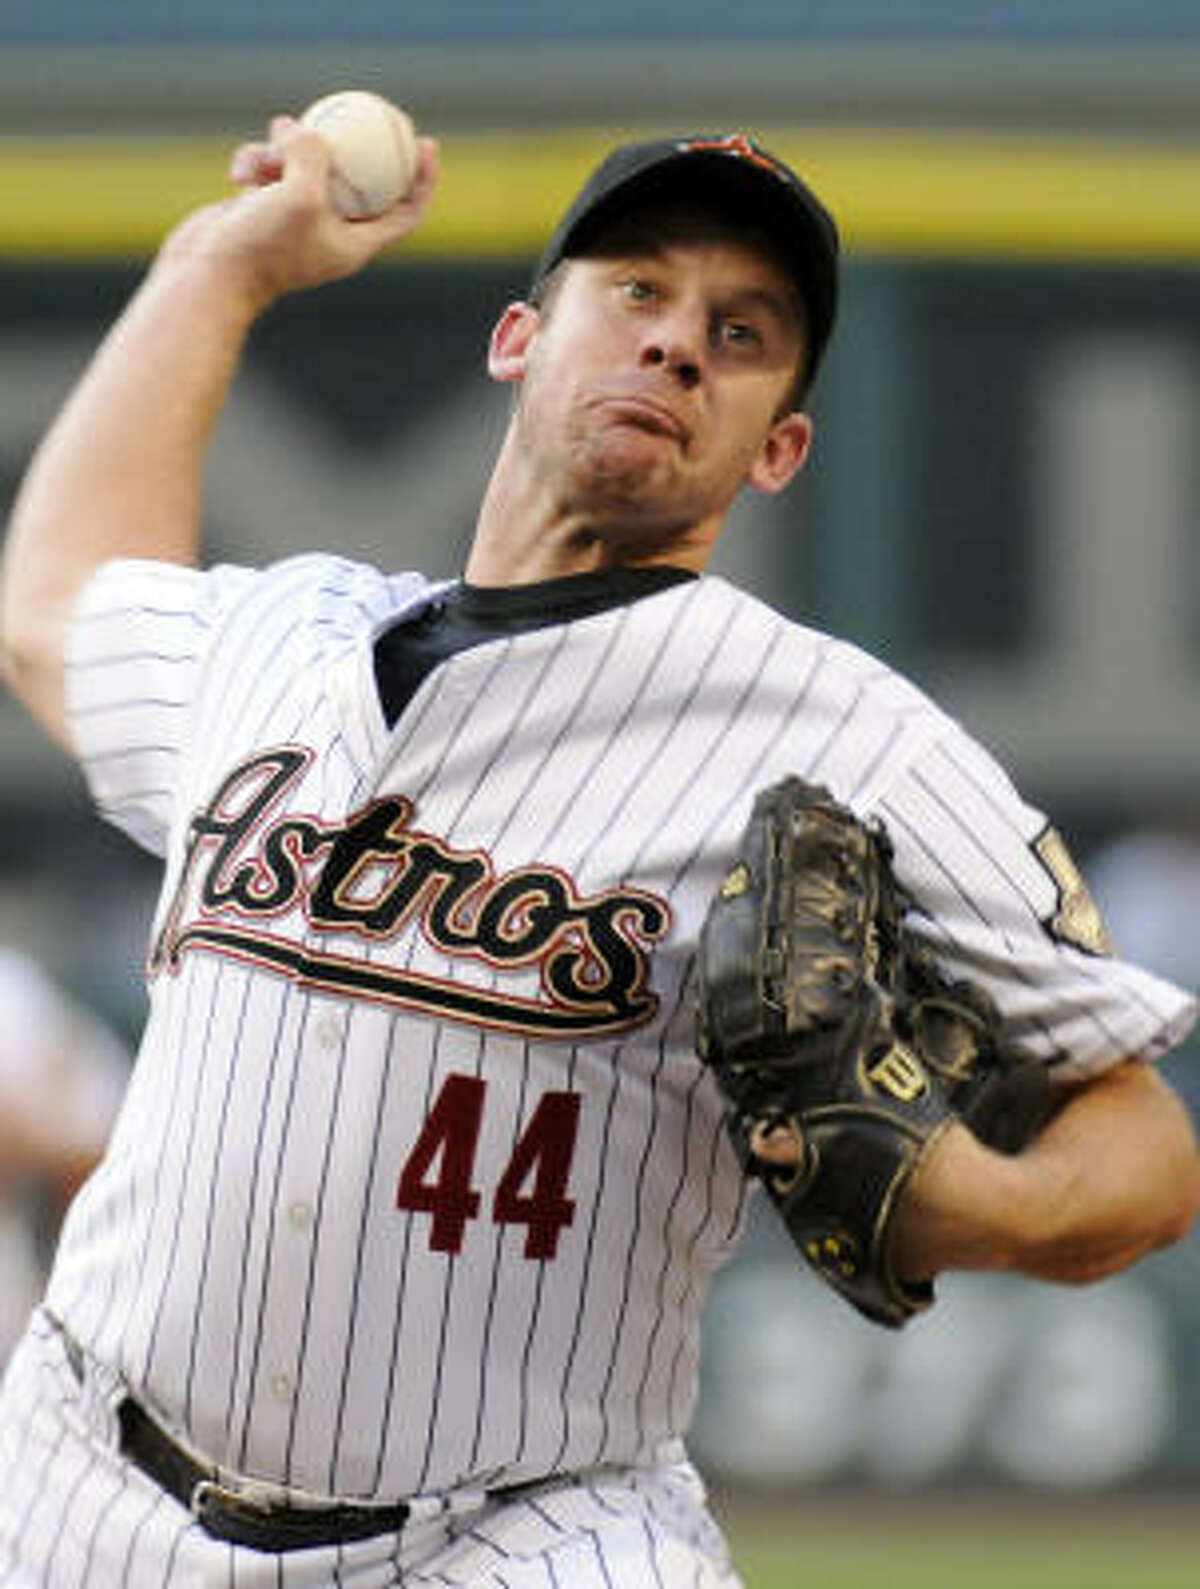 Roy Oswalt started for the Astros, going for his second win of the season.